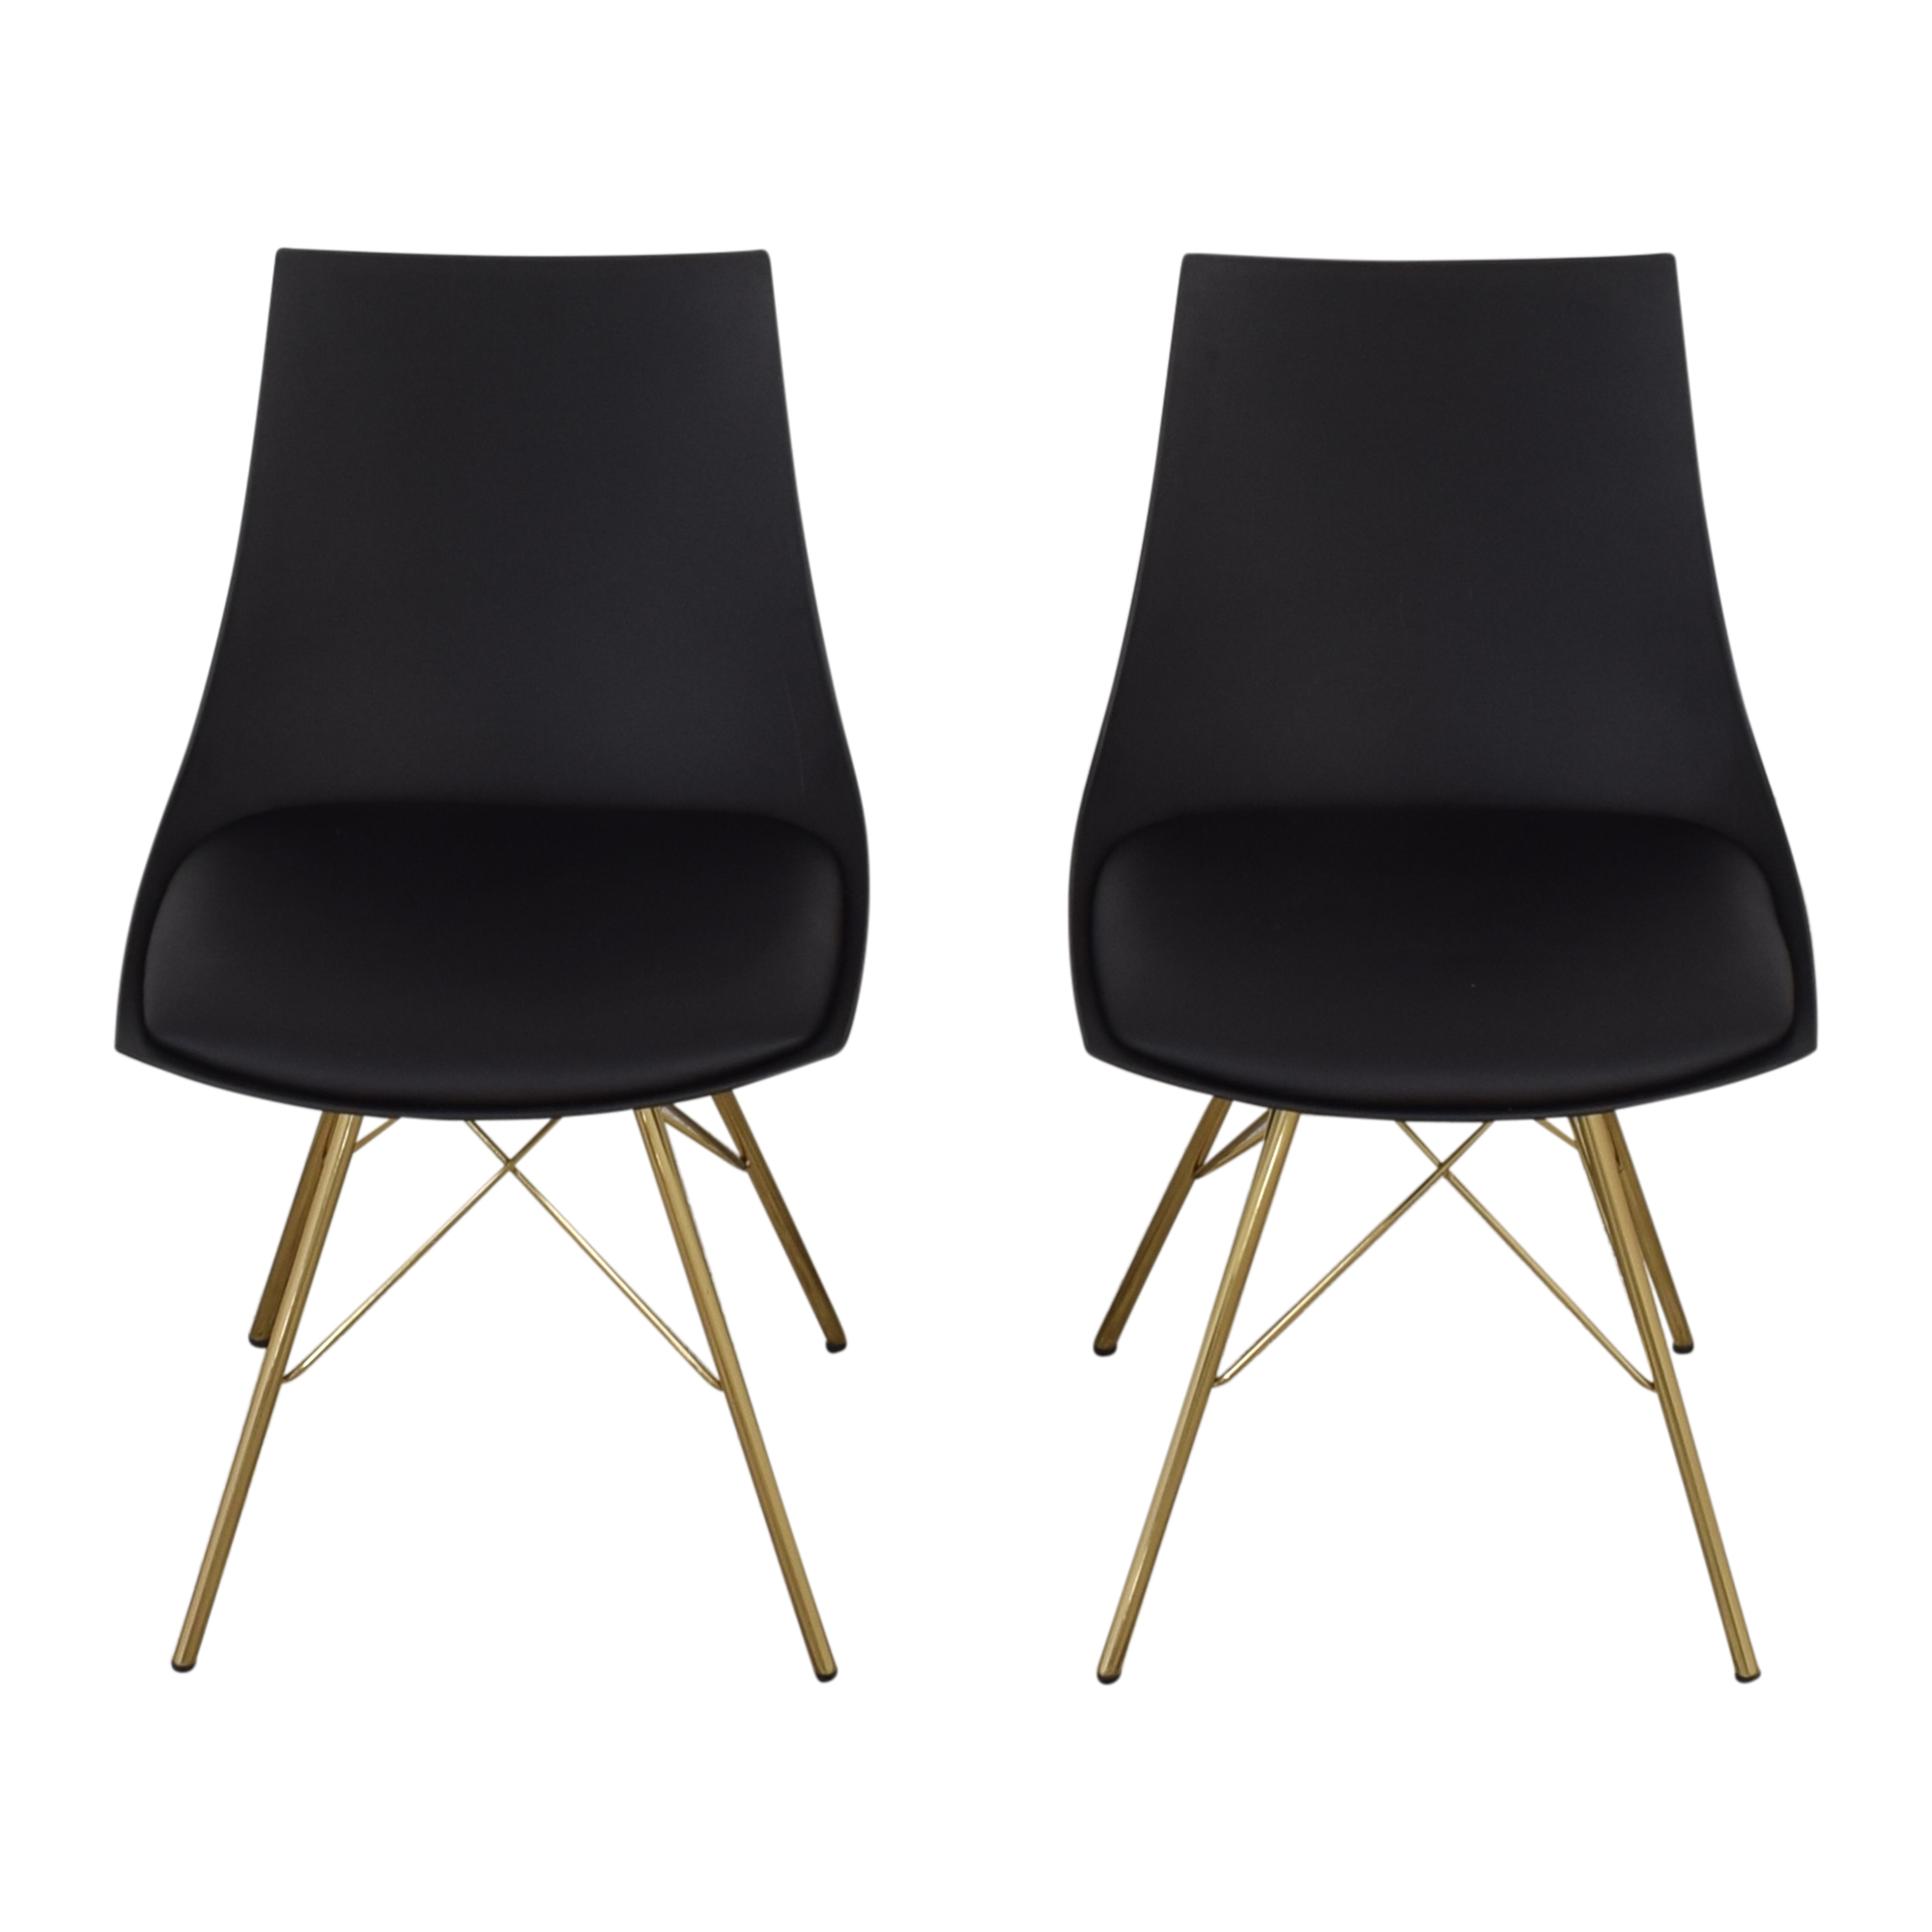 Office Star Office Star Dining Chairs with Padded Seat in Black pa